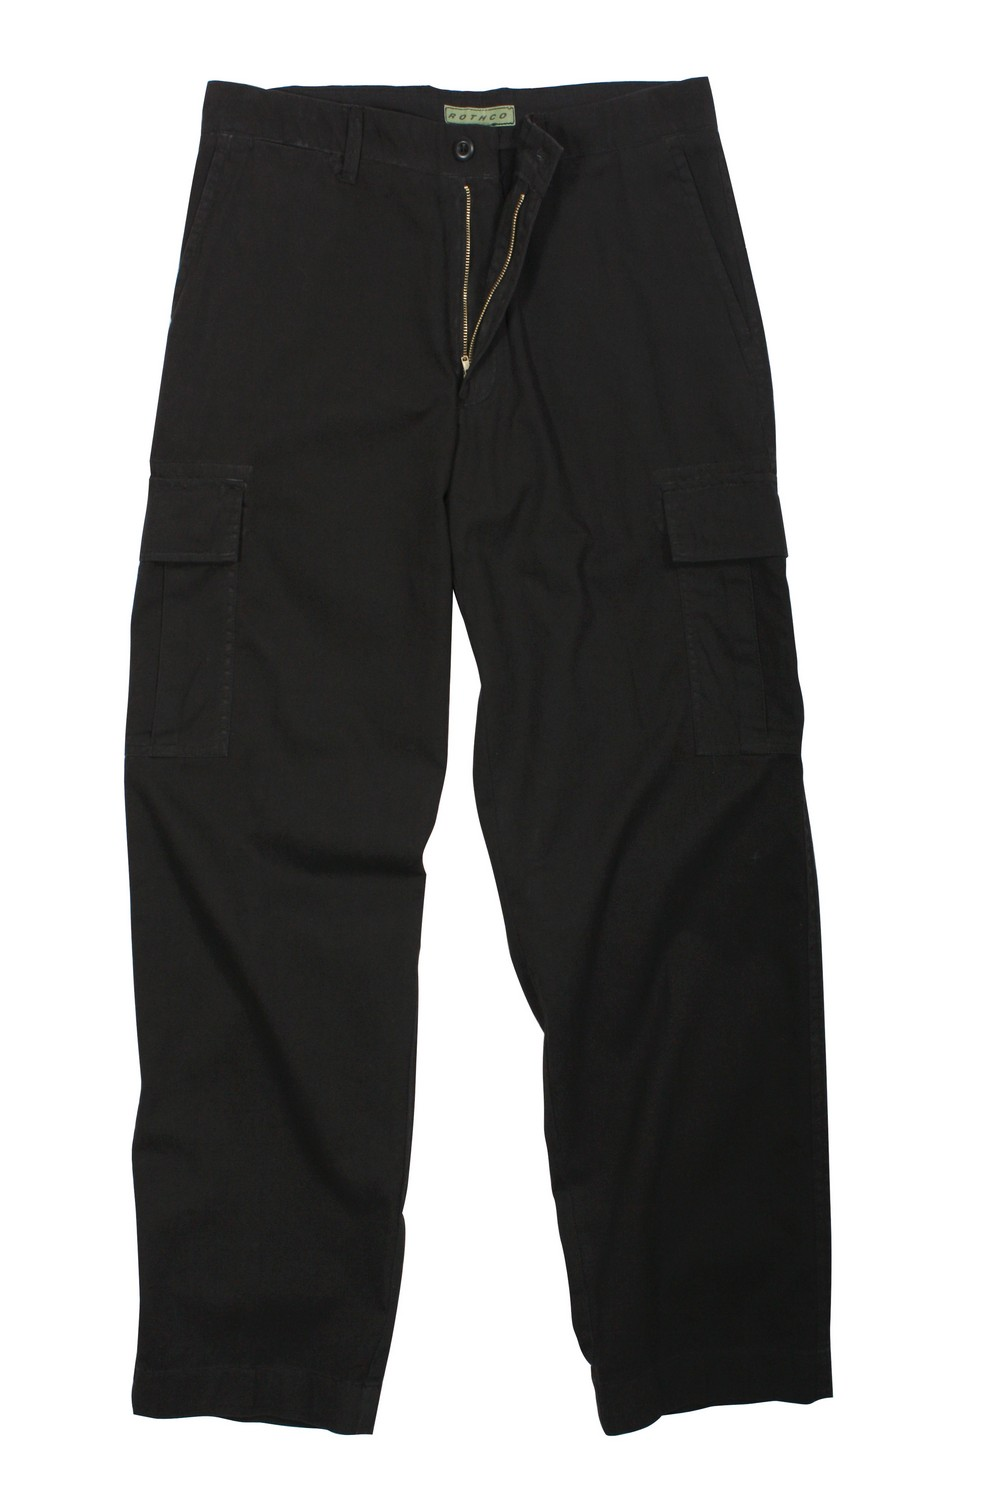 Rothco Mens Pants - Vintage Flat Front Cargo, Black by Rothco at Sears.com